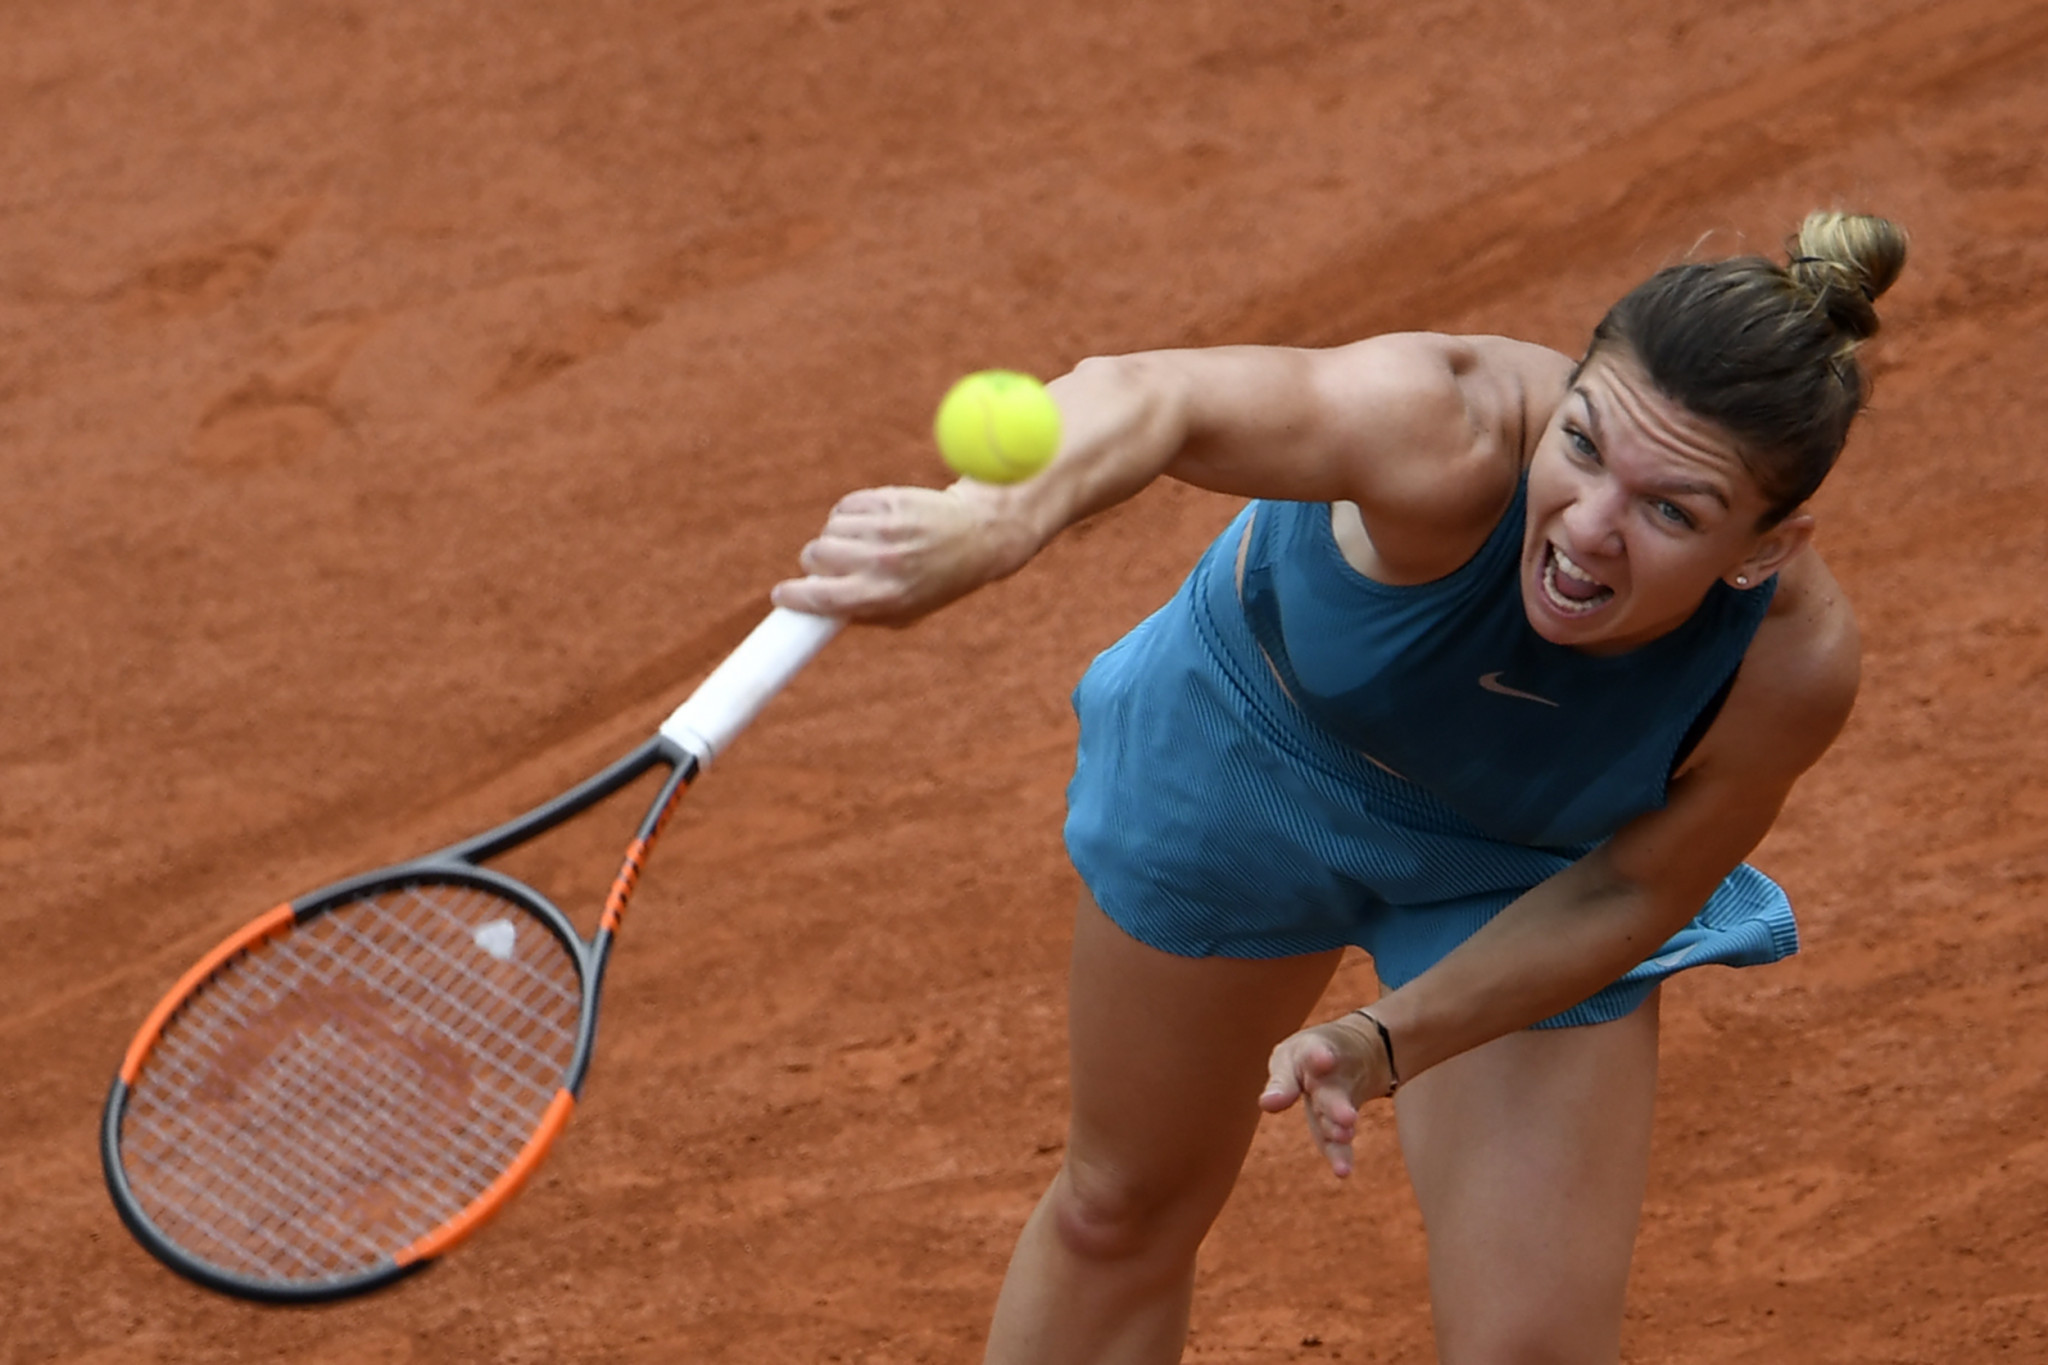 Halep begins well in pursuit of first Grand Slam title at French Open